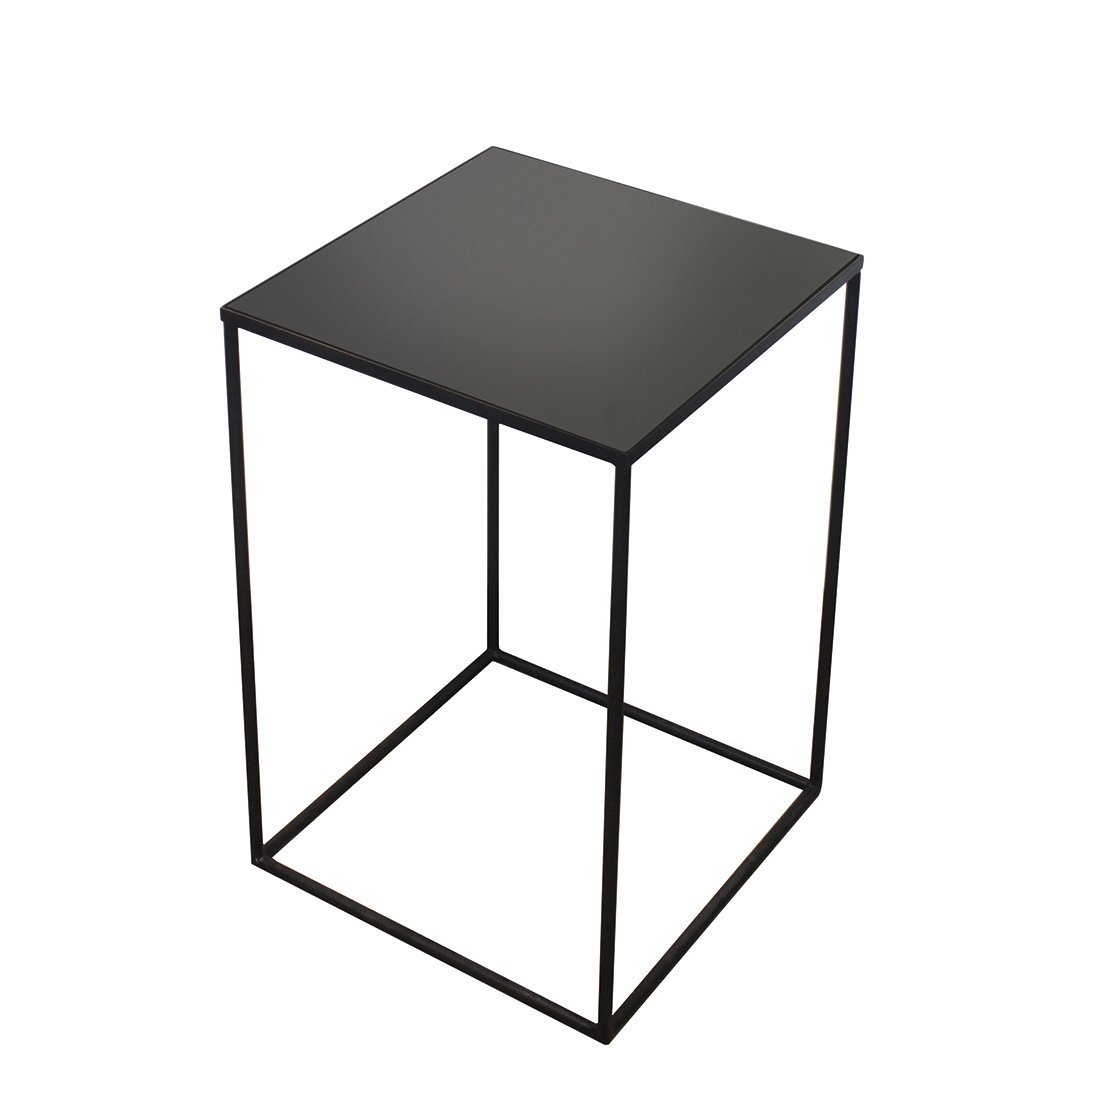 Ethnicraft Square Side Table Charcoal Mirror Large - Mid